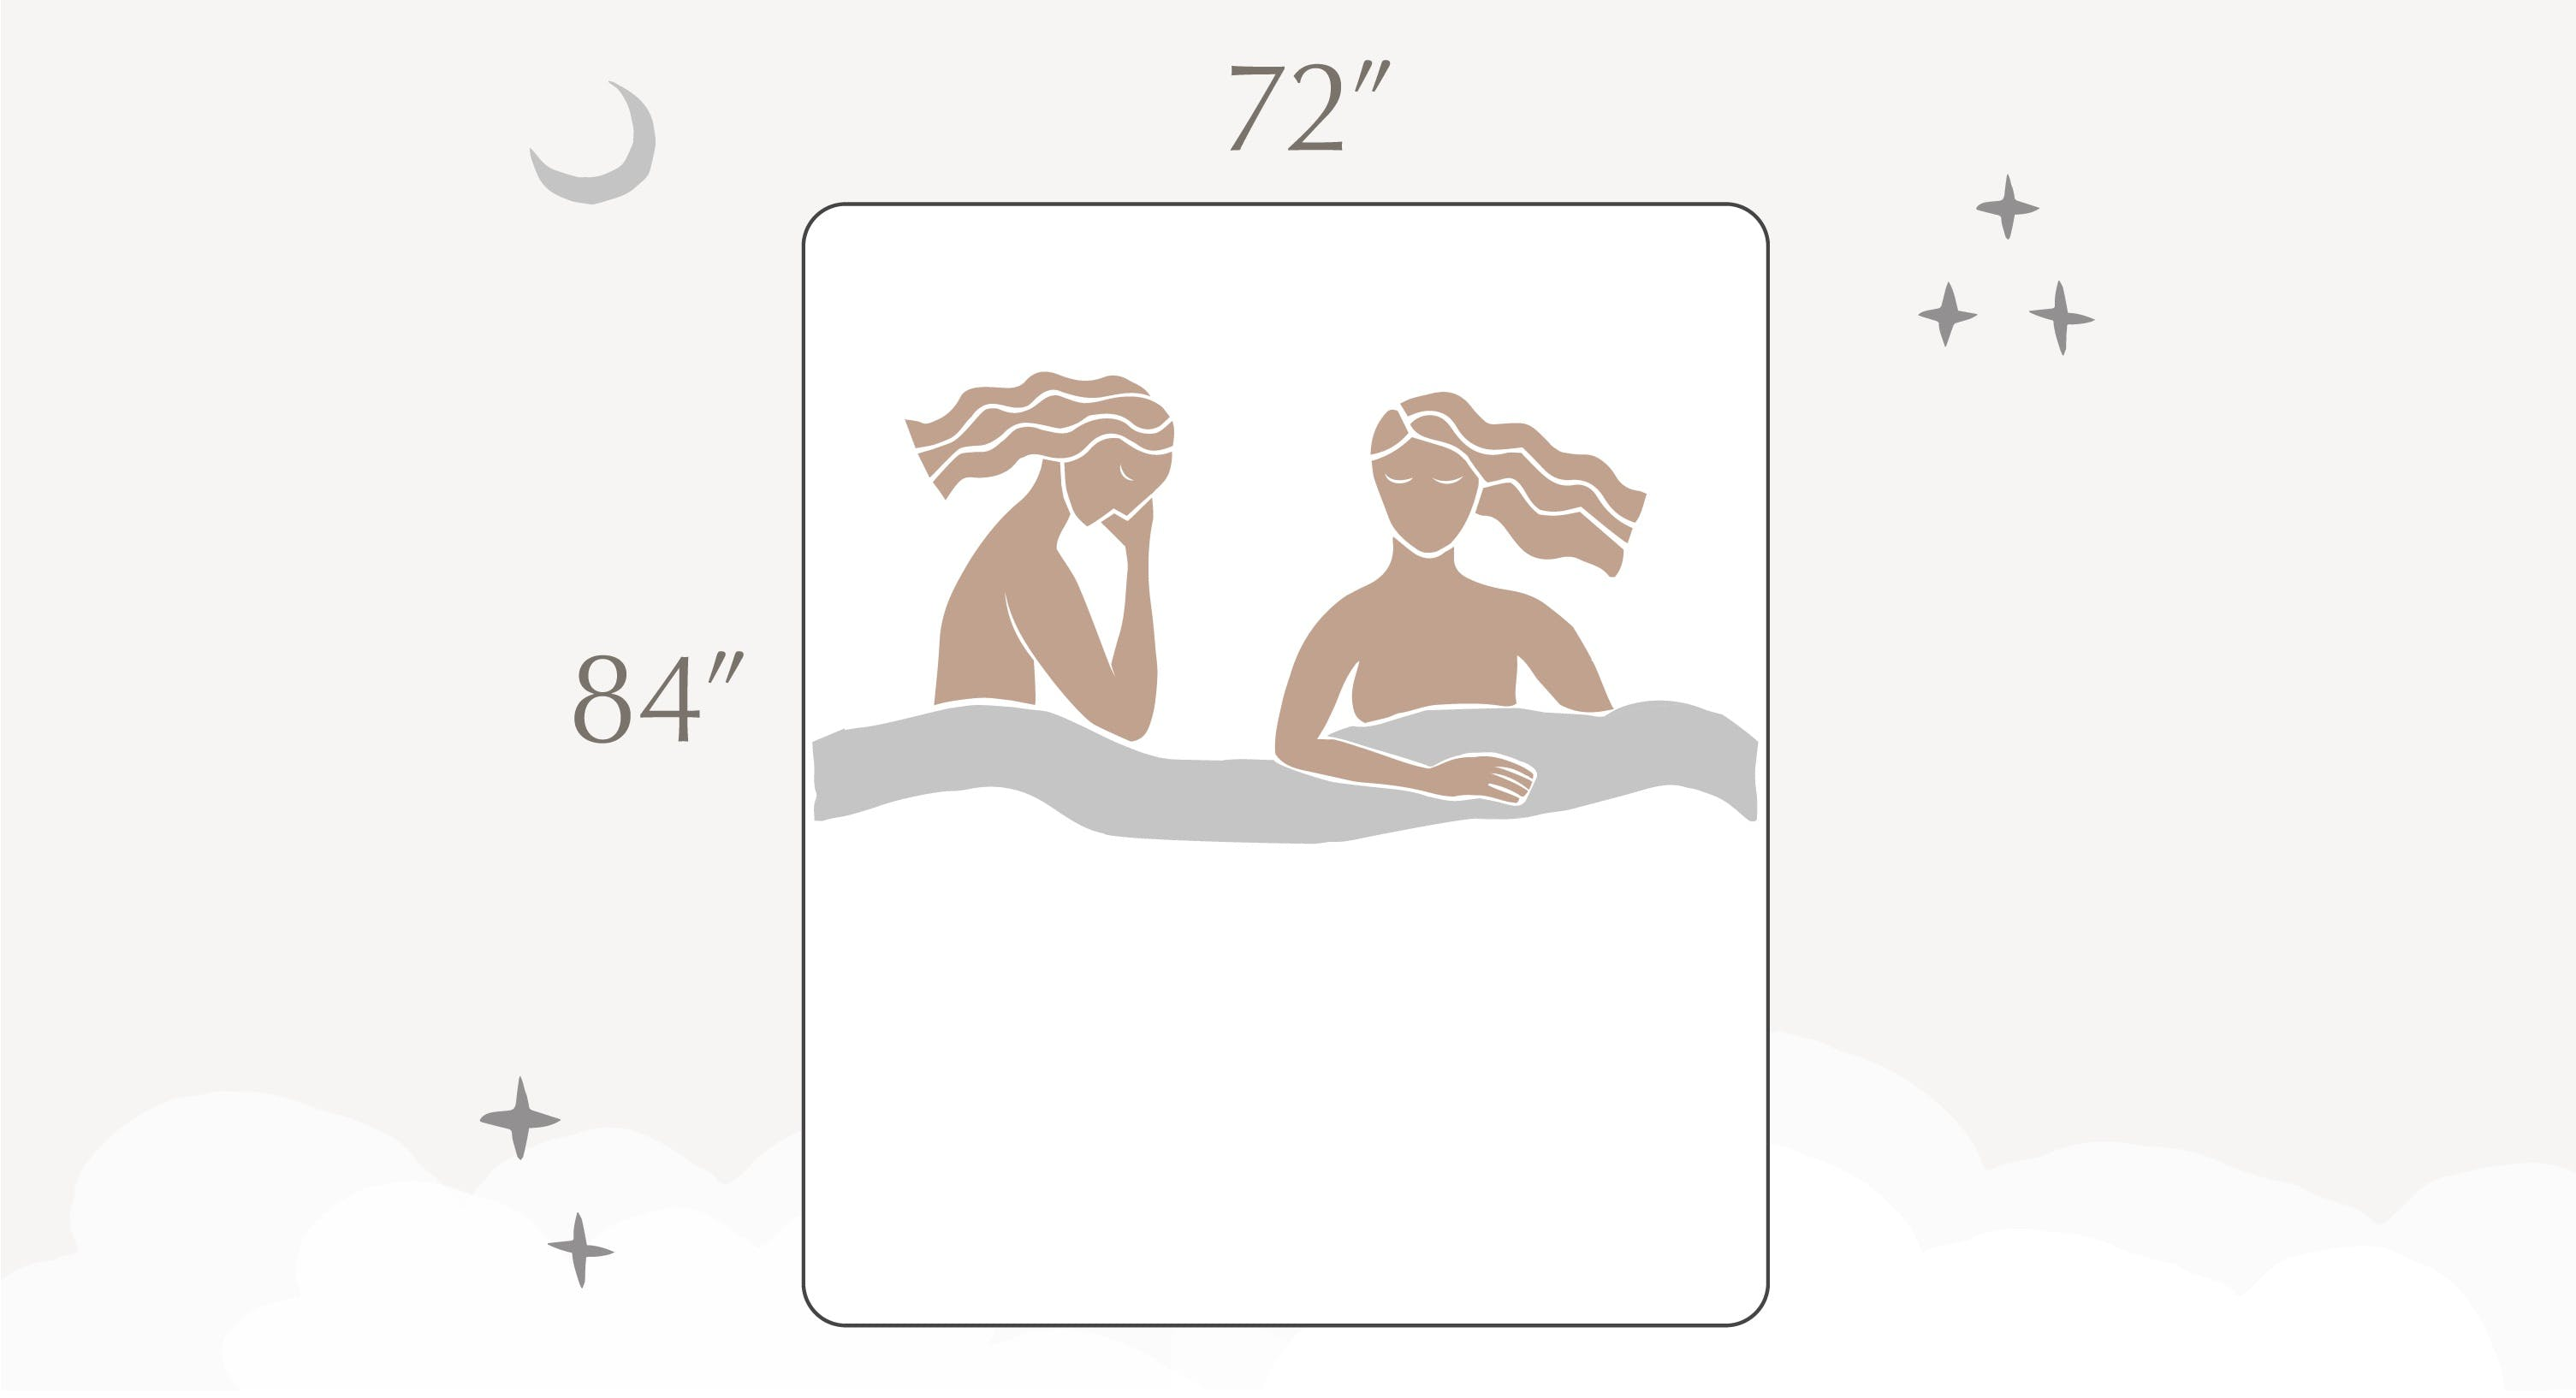 california king size bed dimensions illustration